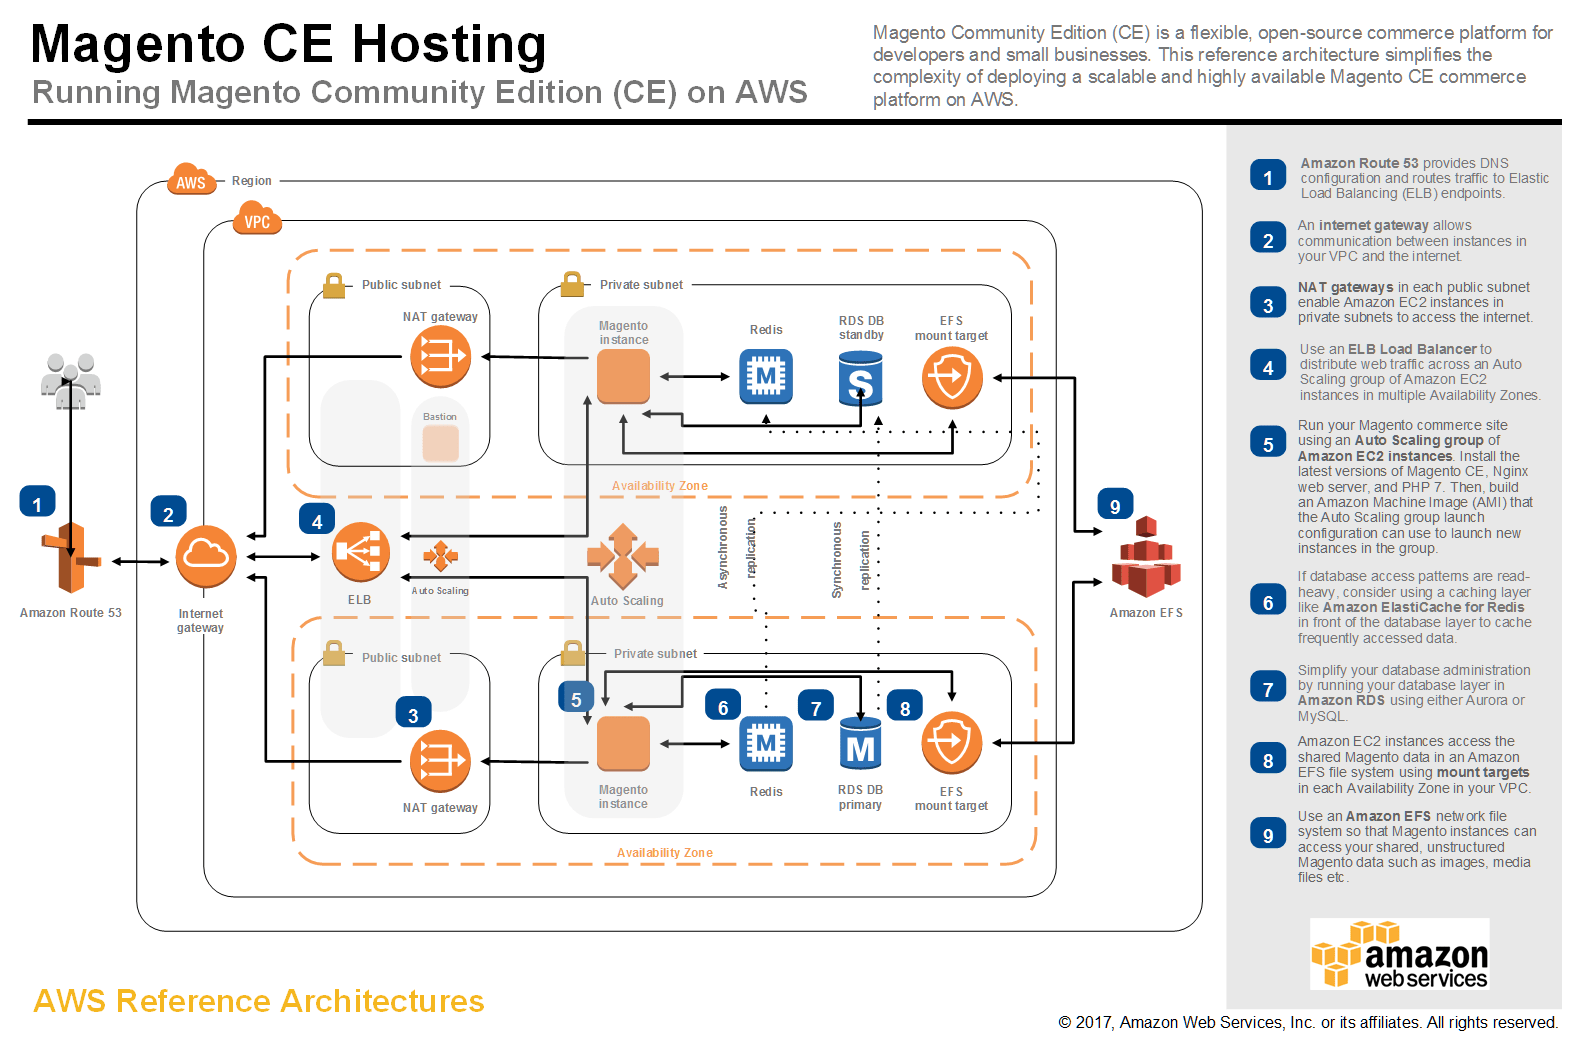 sap 3 tier architecture diagram 1999 suzuki gsxr 750 wiring amazon web services example